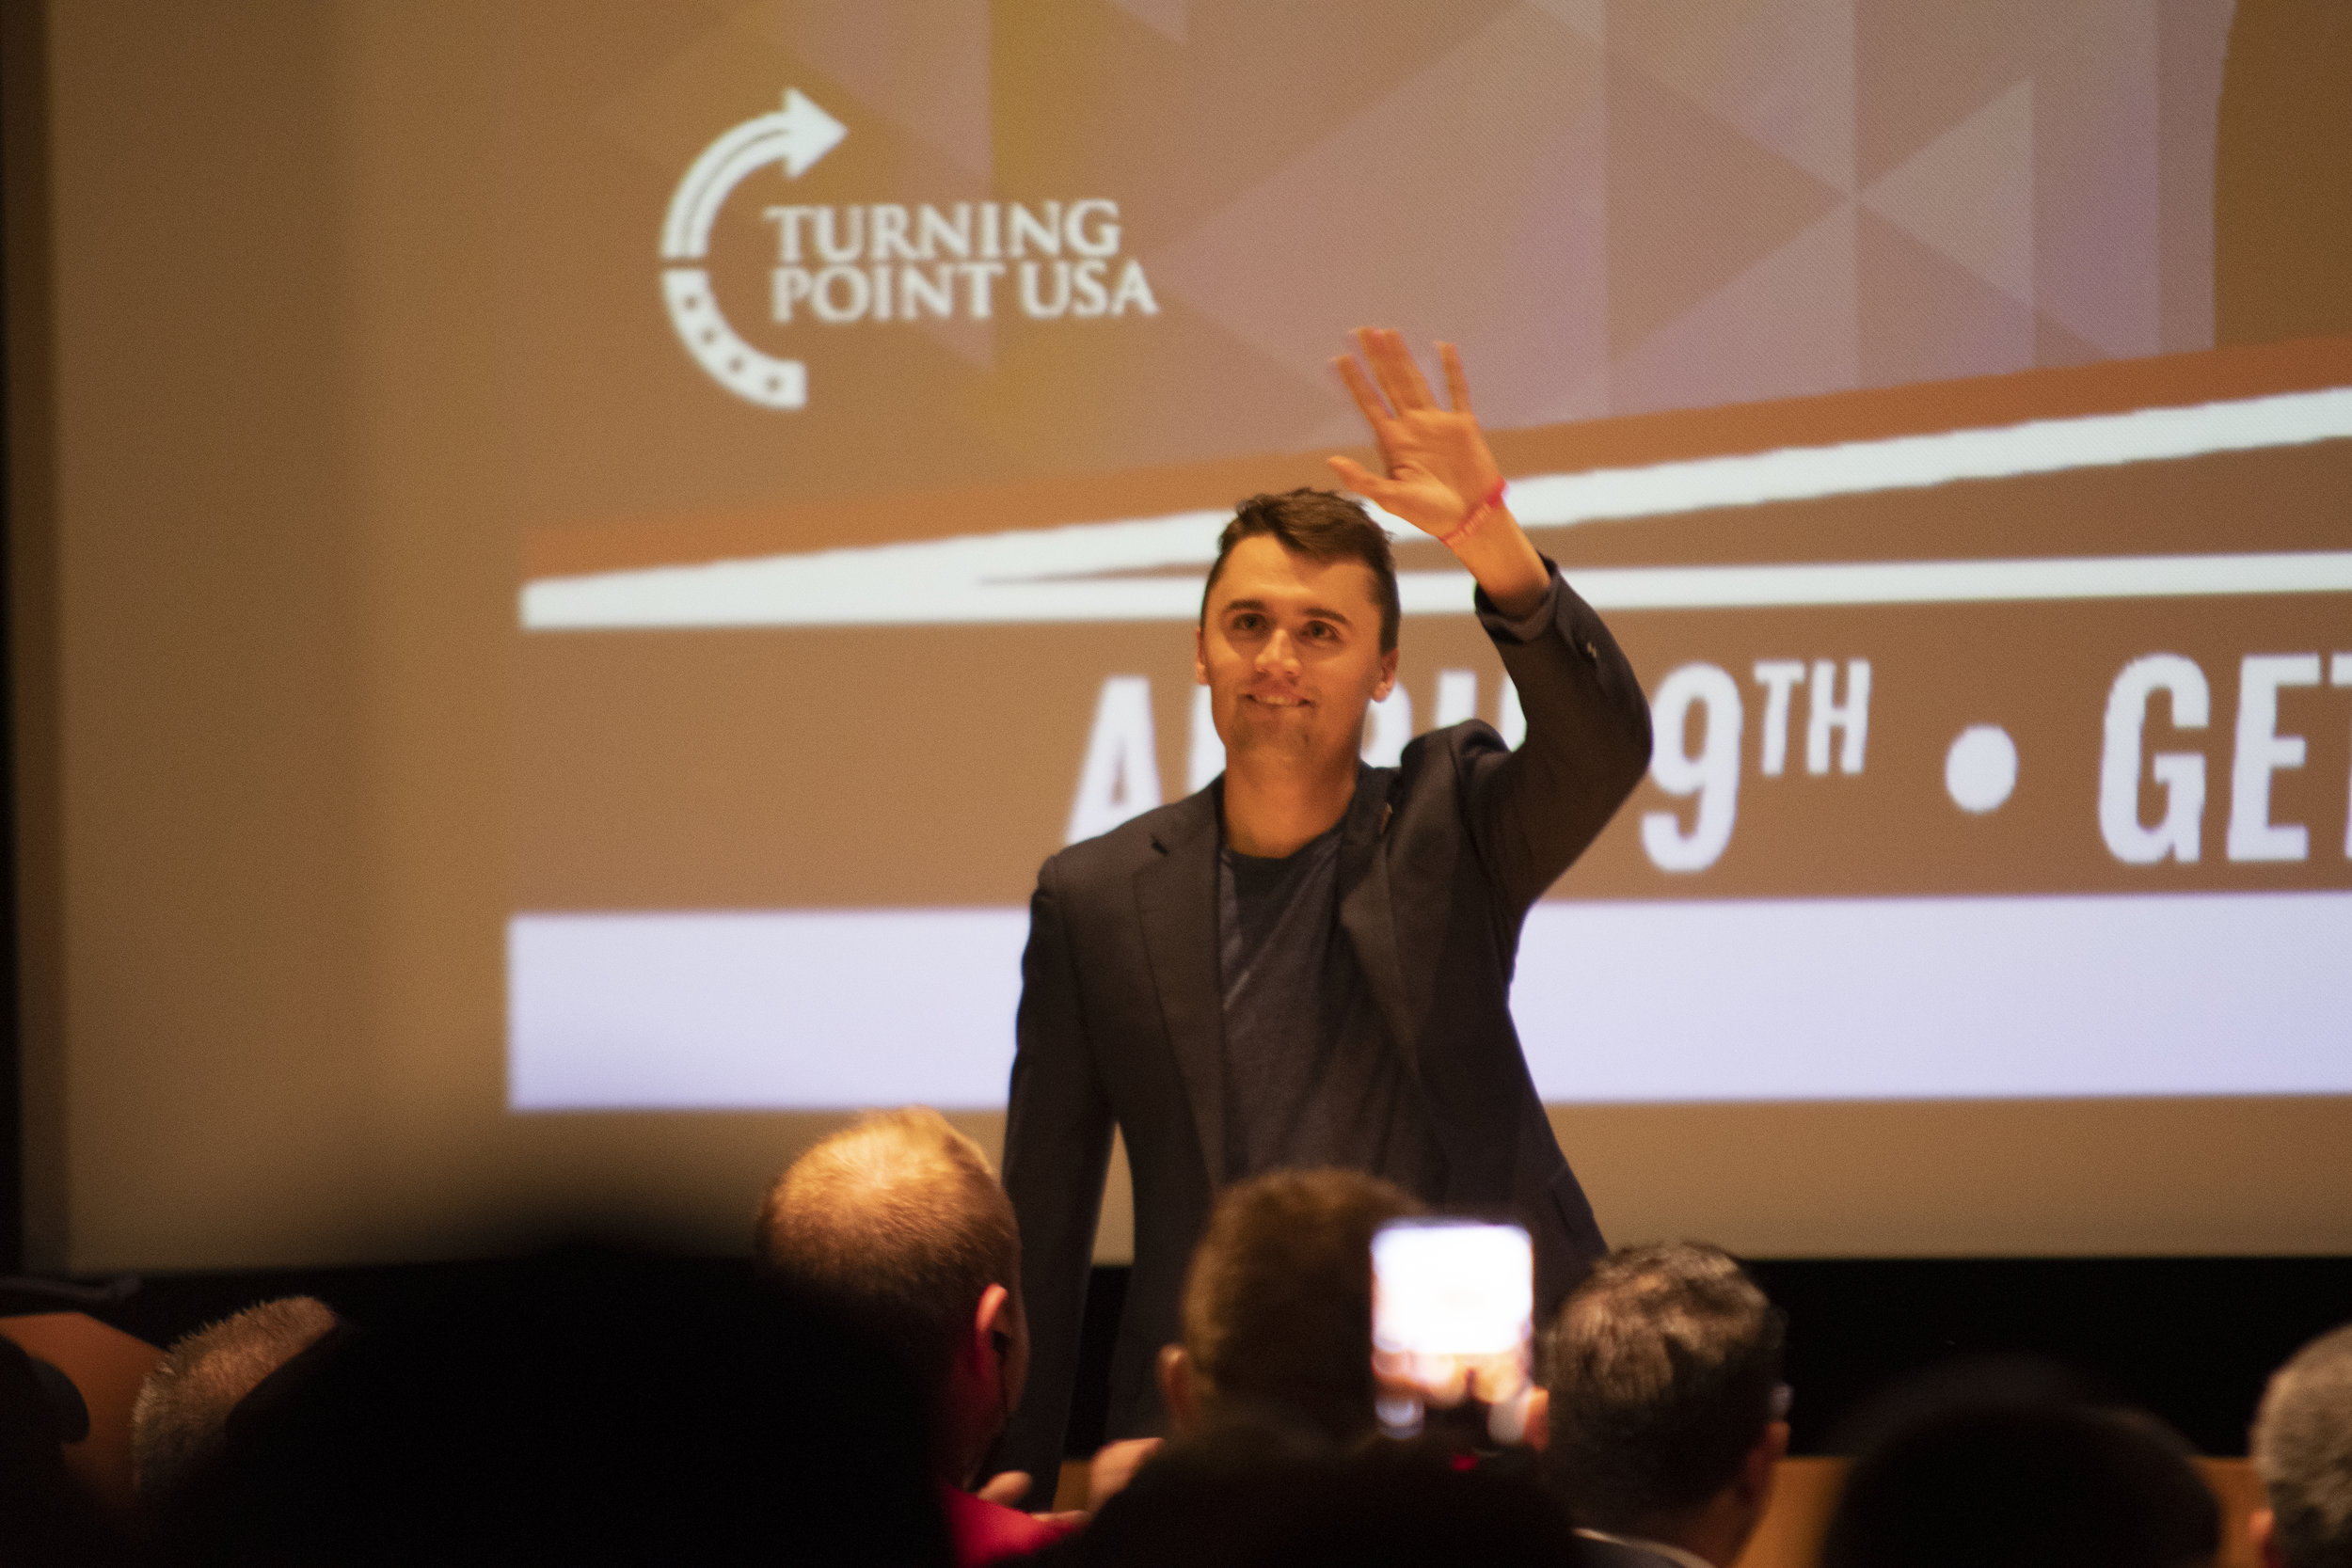 Conservative speakers Dave Rubin, Charlie Kurk and Candace Owens spoke in the Student Union Theater Tuesday night as representatives of Turning Point USA. (Nicholas Hampton/The Daily Campus)